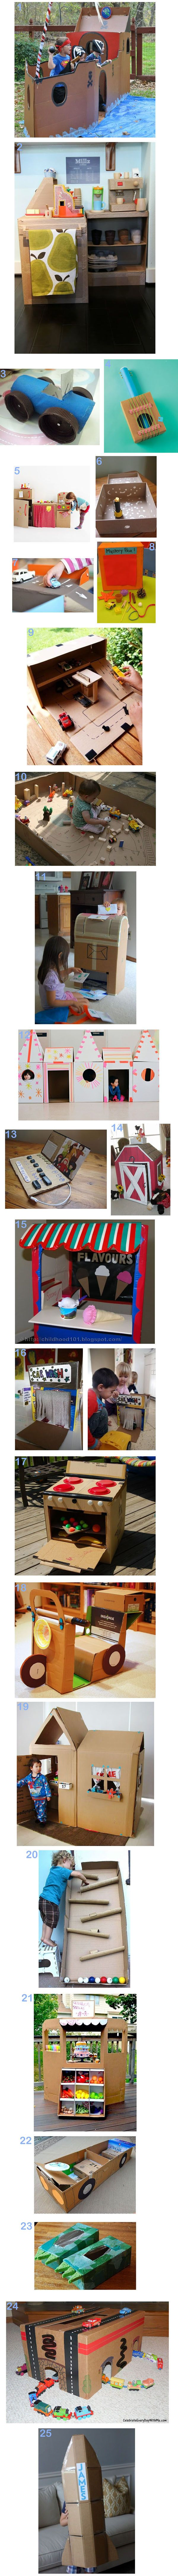 25 Fun Ideas for a Cardboard Box#Repin By:Pinterest++ for iPad#